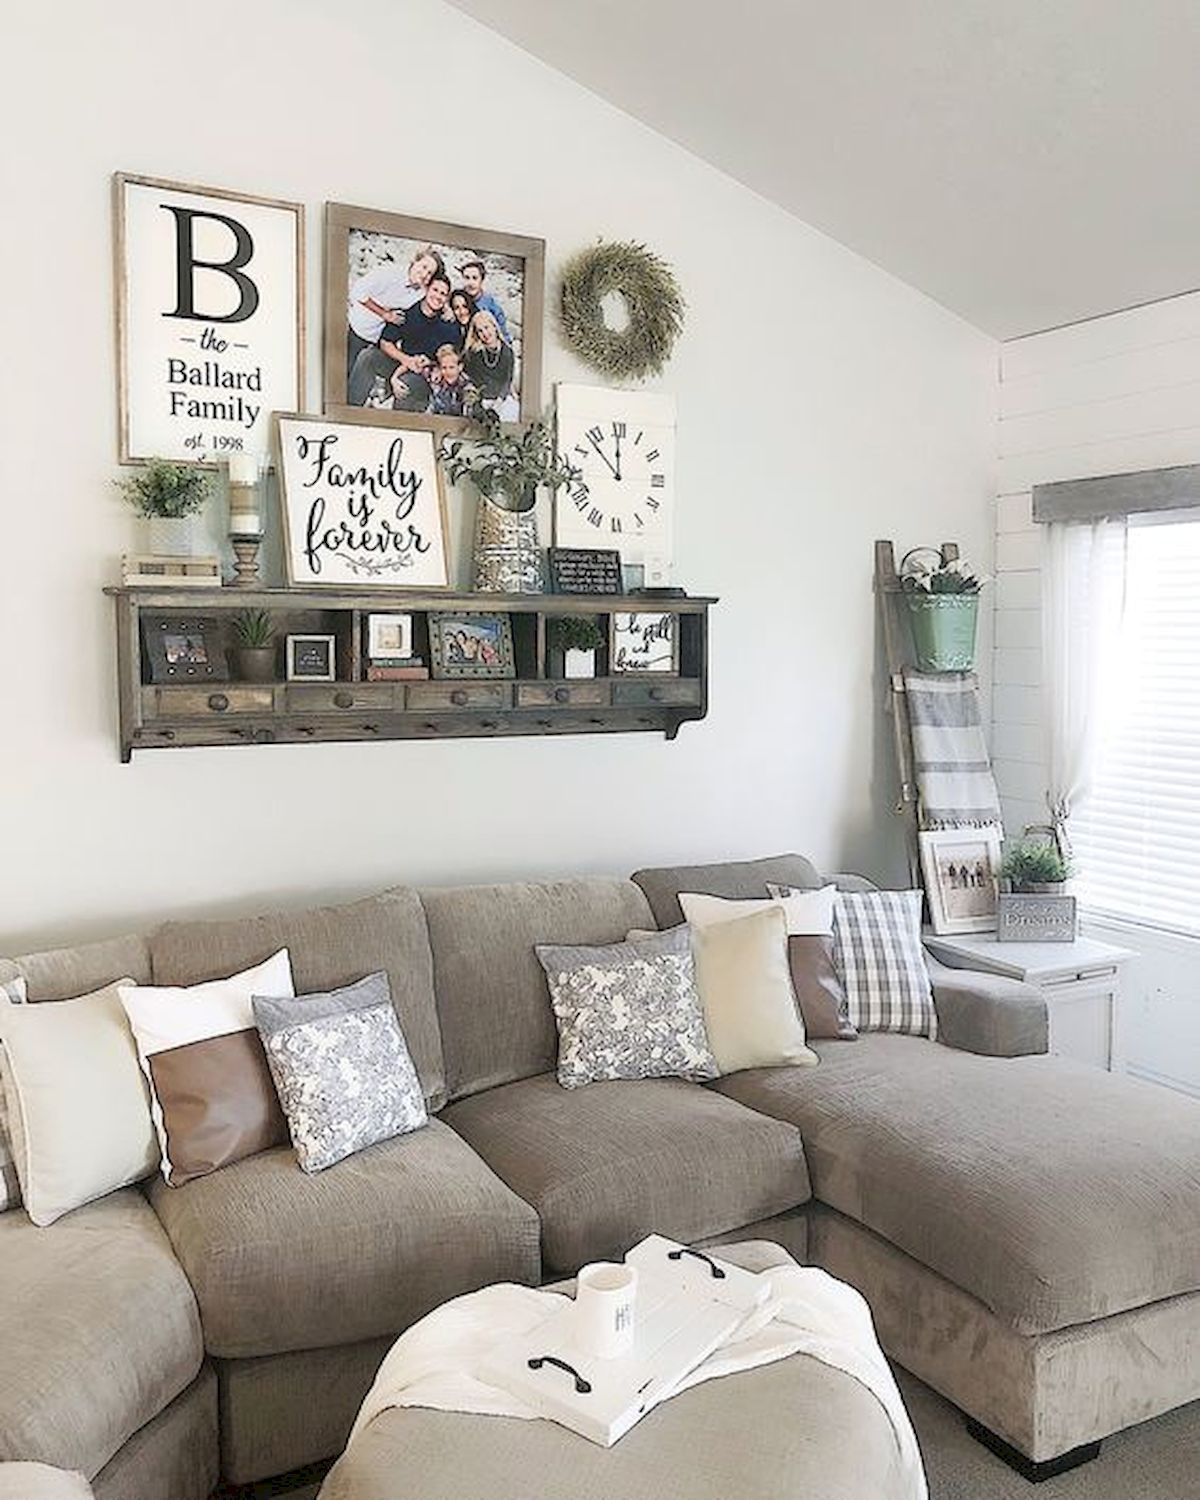 75 Best Farmhouse Wall Decor Ideas For Living Room 1 Ideaboz In 2020 Wall Decor Living Room Farmhouse Decor Living Room Family Room Walls